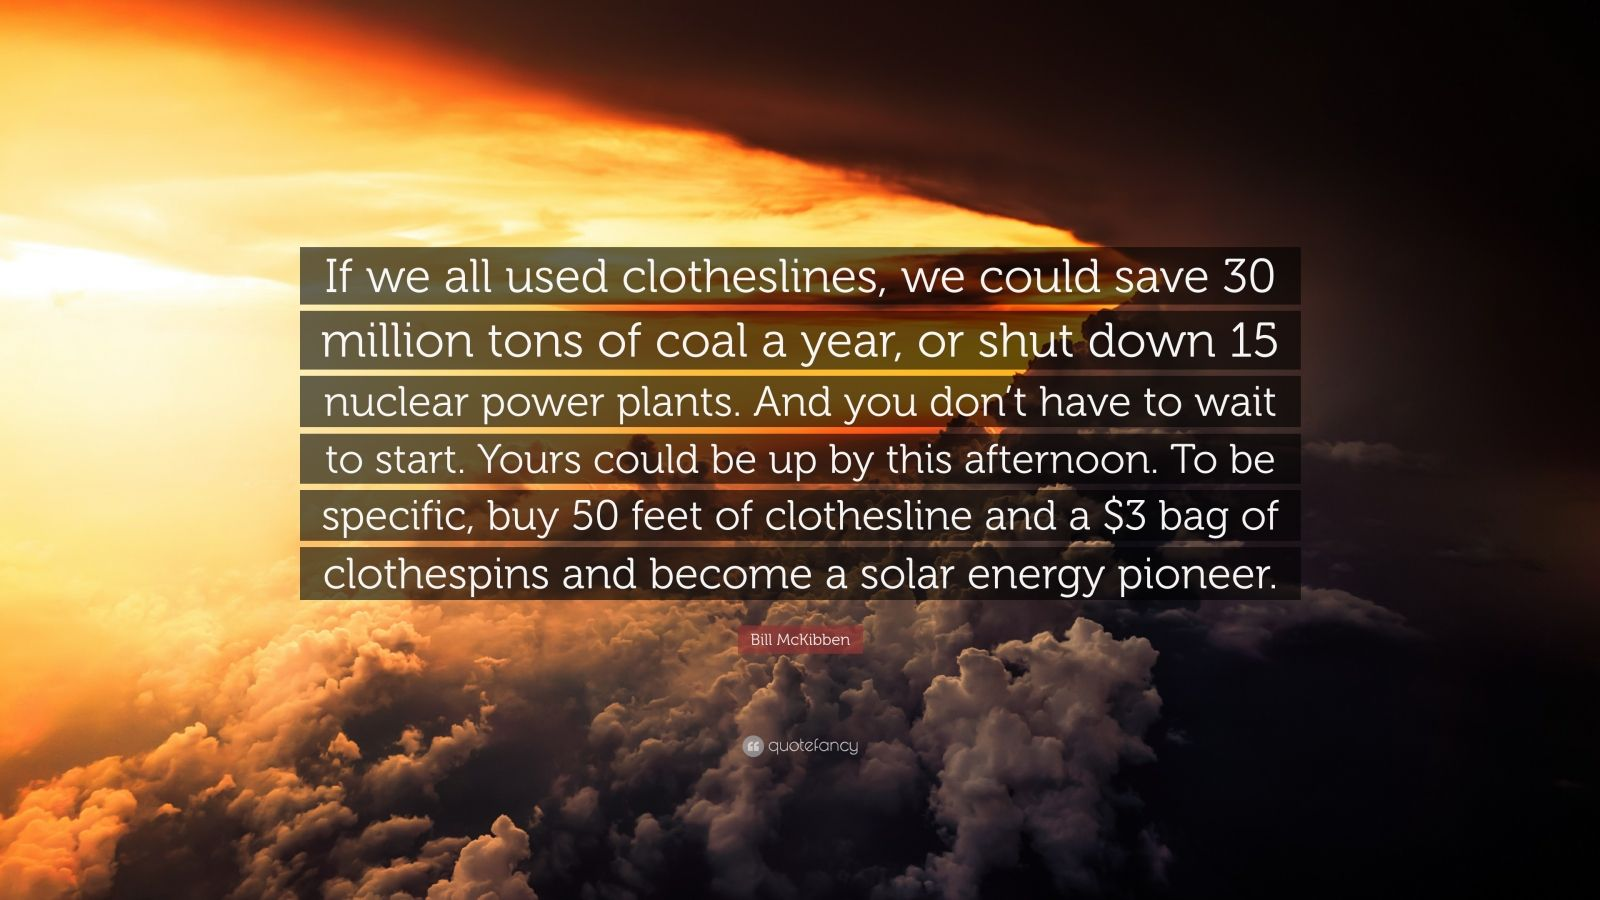 "Bill McKibben Quote: ""If we all used clotheslines, we could save 30 million tons of coal a year, or shut down 15 nuclear power plants. And you don't have to wait to start. Yours could be up by this afternoon. To be specific, buy 50 feet of clothesline and a $3 bag of clothespins and become a solar energy pioneer."""